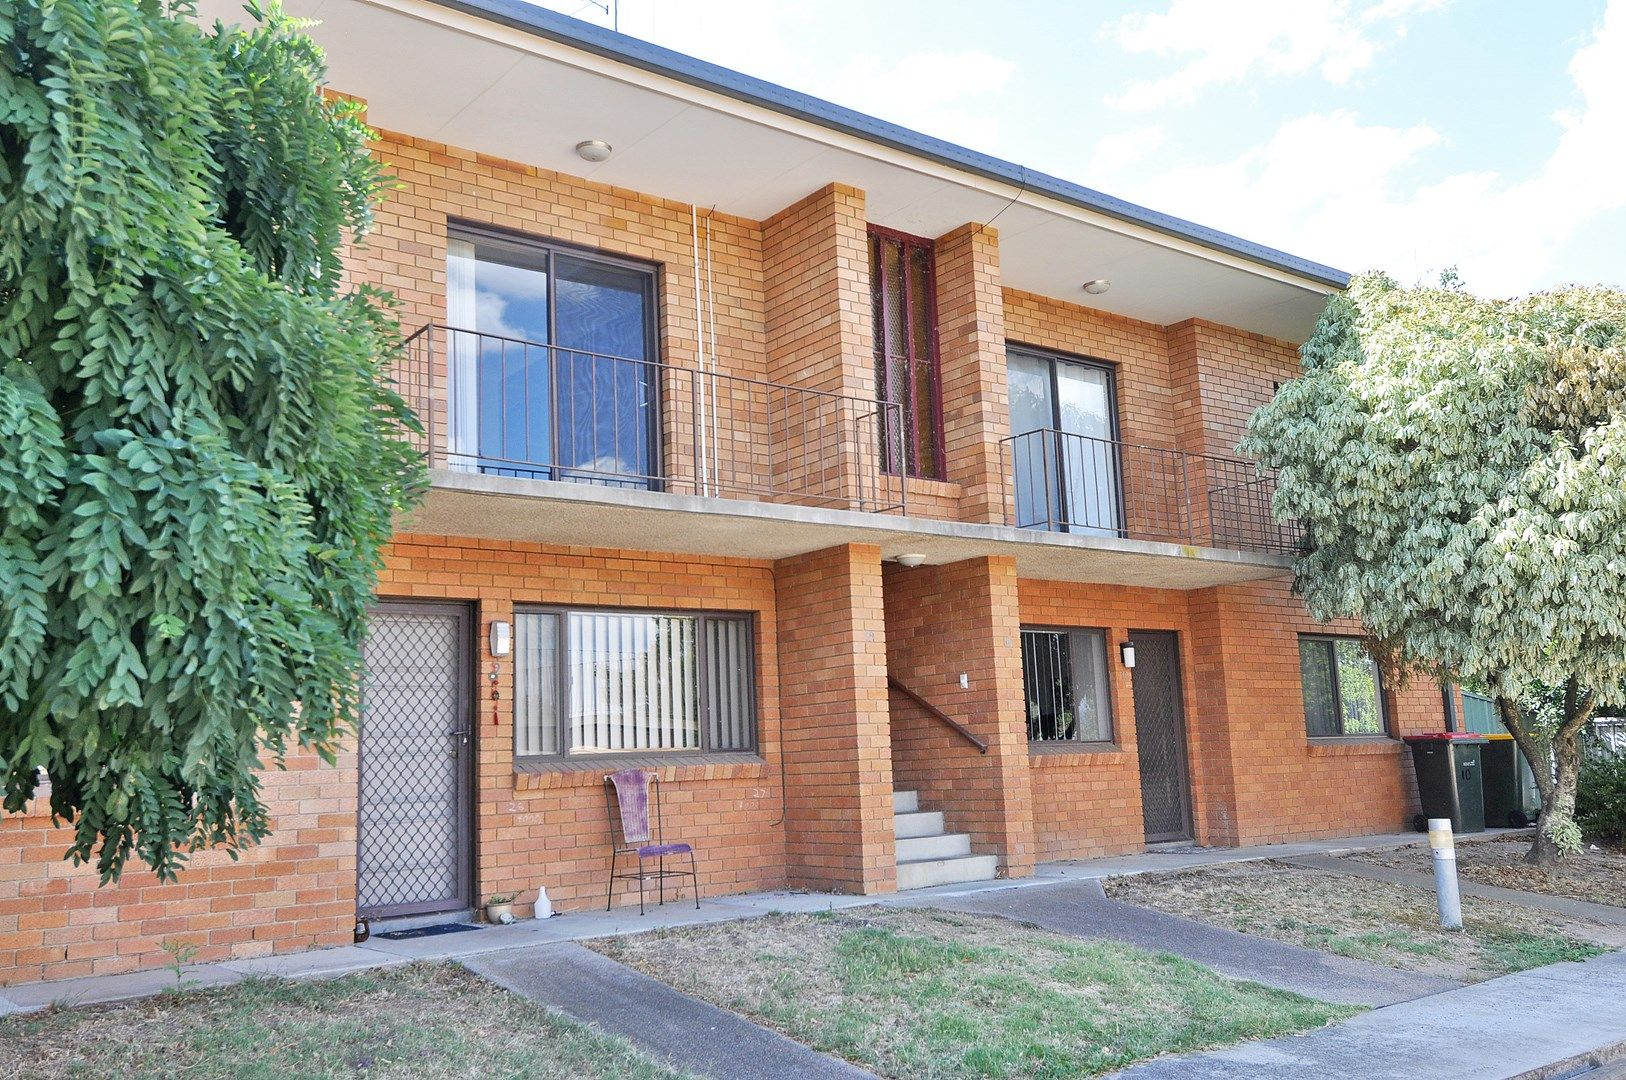 15/55 Piper Street, Bathurst NSW 2795, Image 0